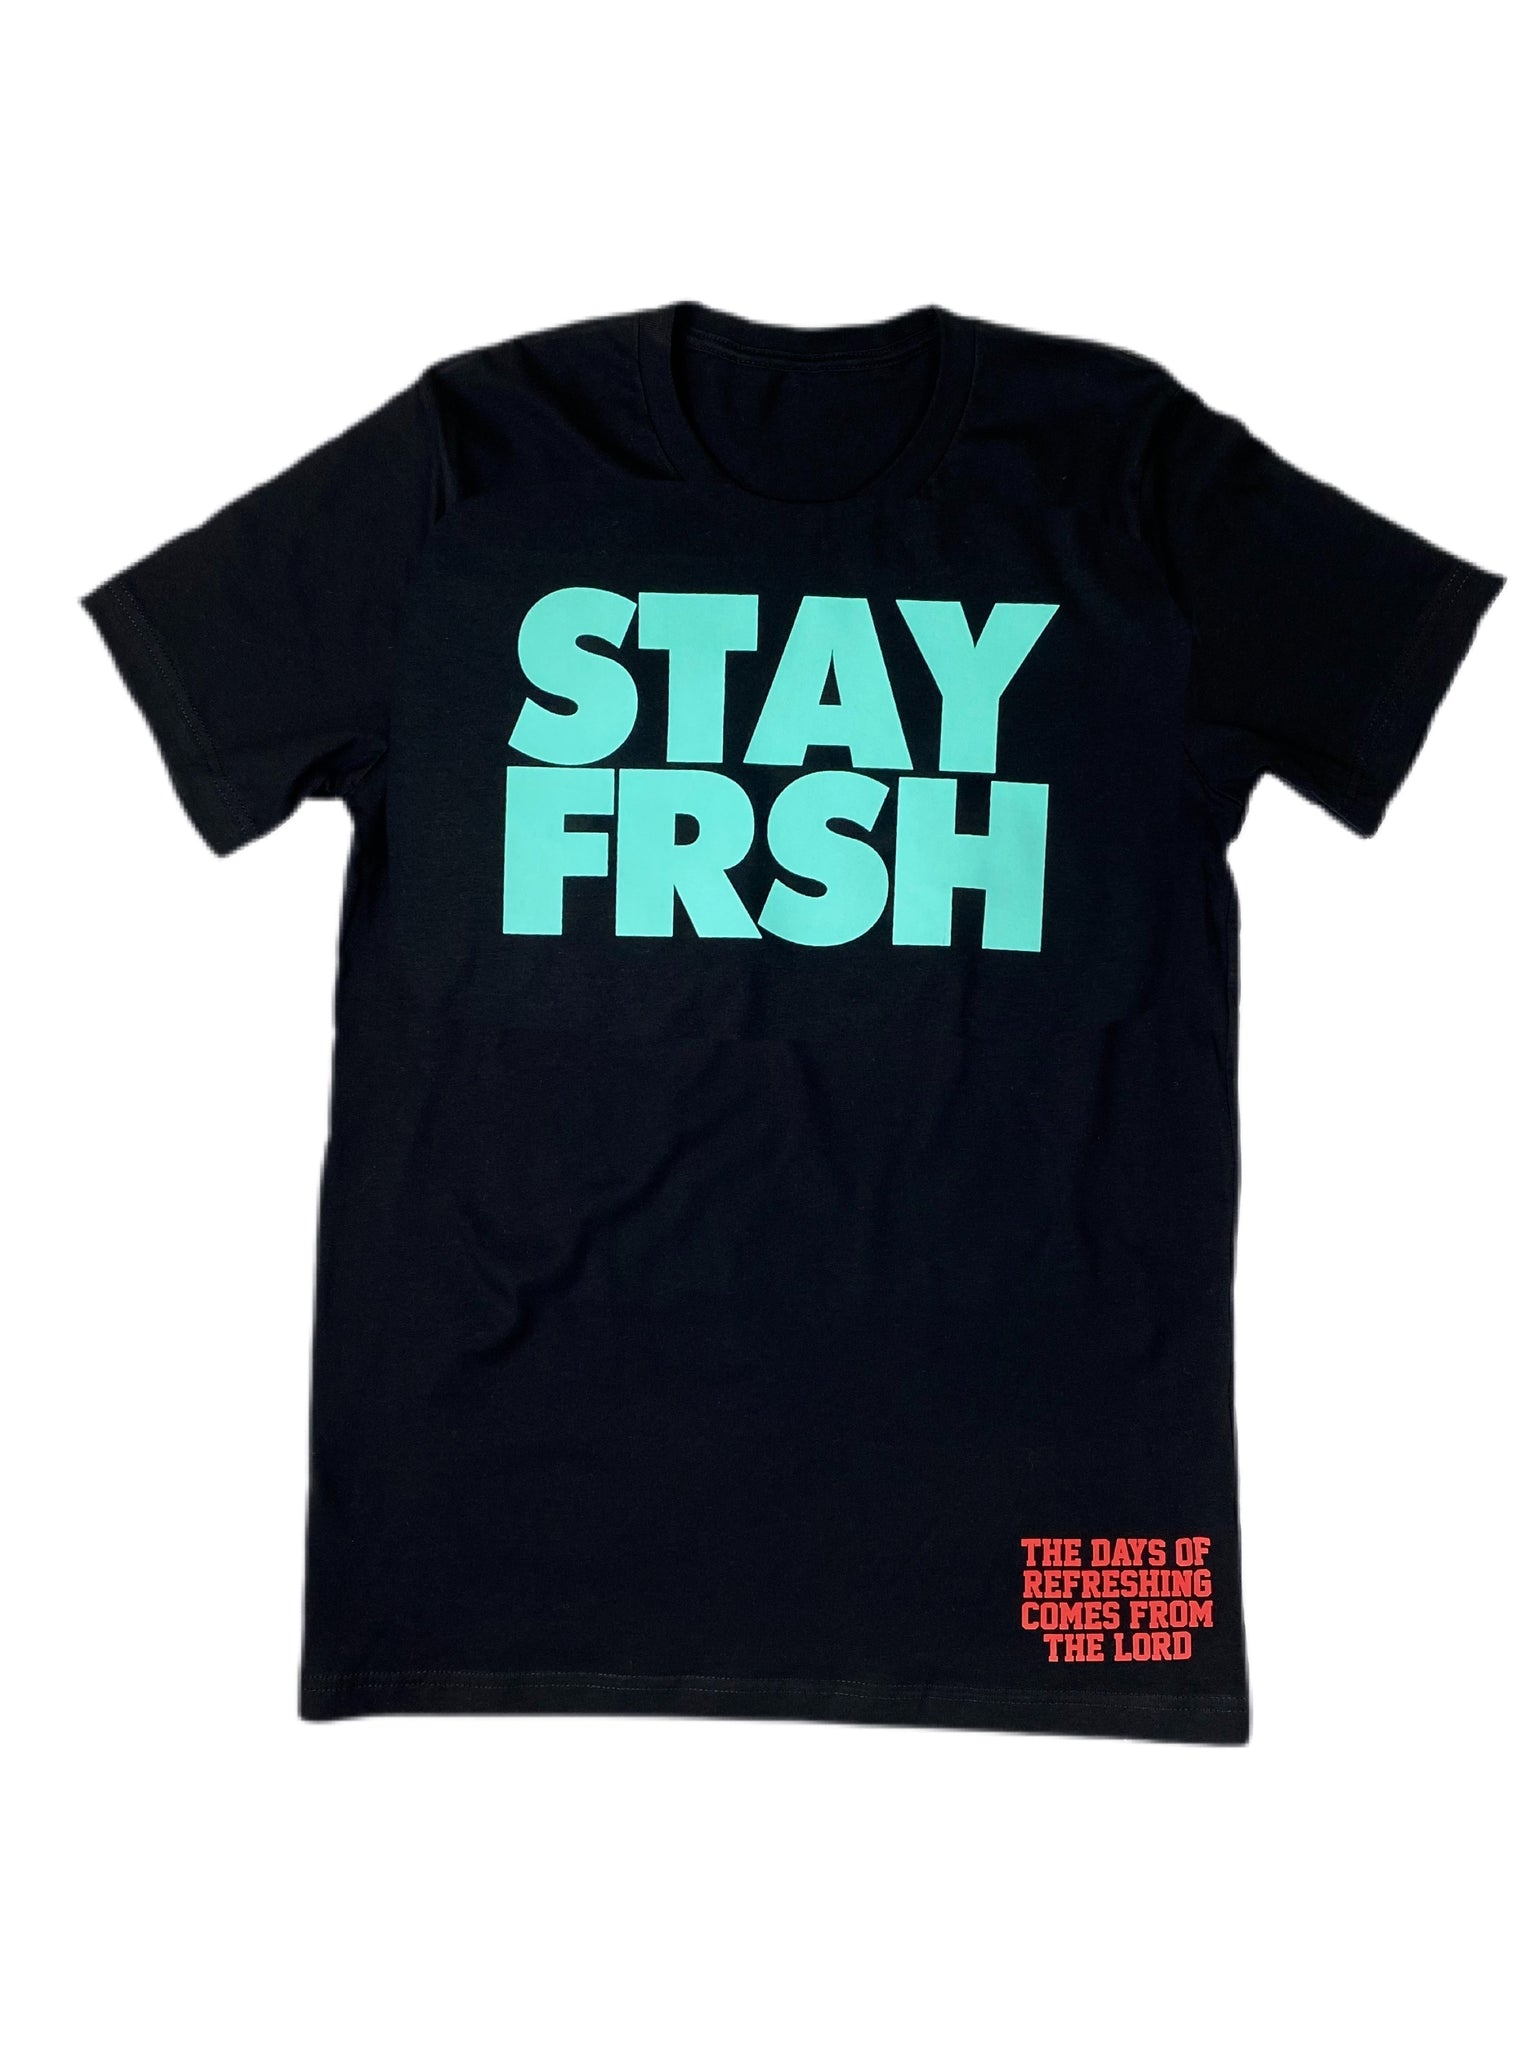 STAY FRSH Black Mintberry Tee